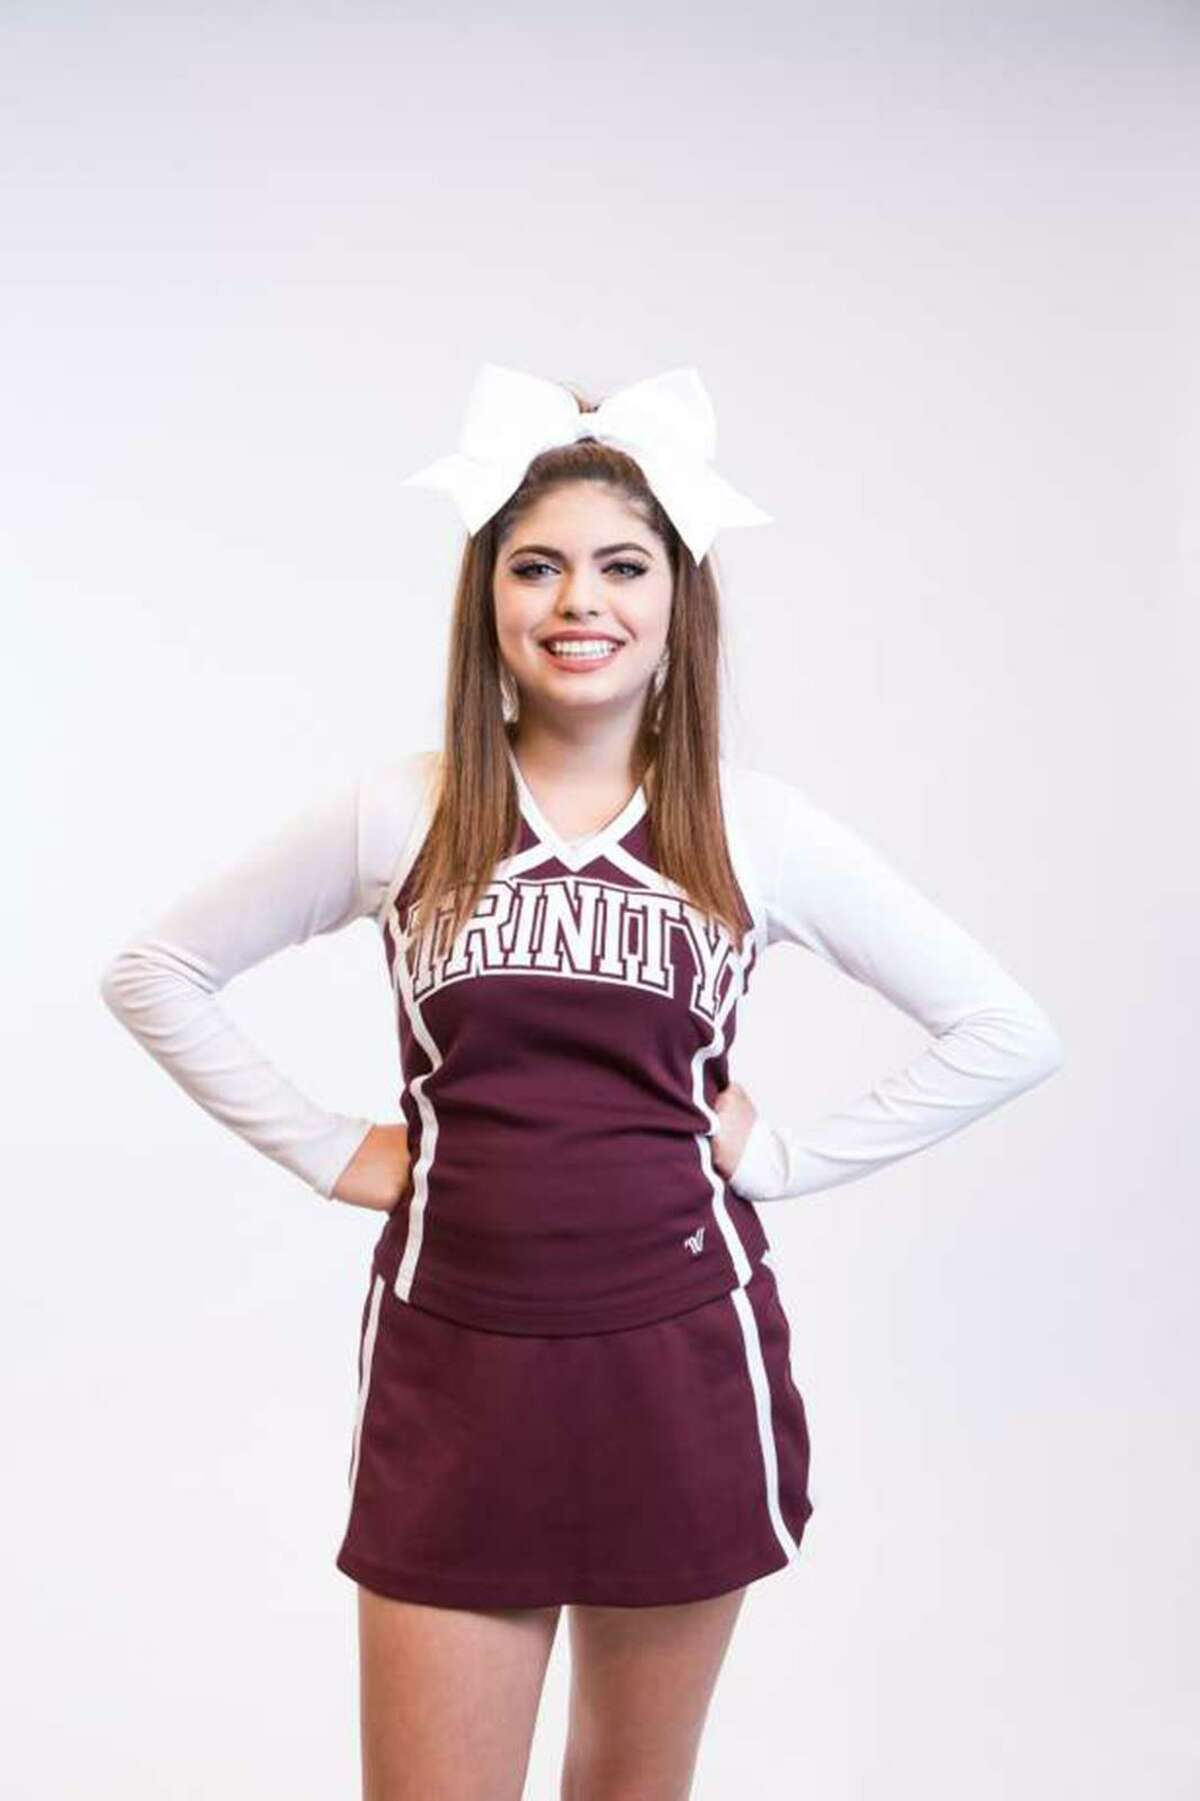 Cayley Mandadi, Trinity University cheerleader, died in 2017 after police say she was sexually abused and beaten. A new statewide alert system may help prevent other such tragedies.